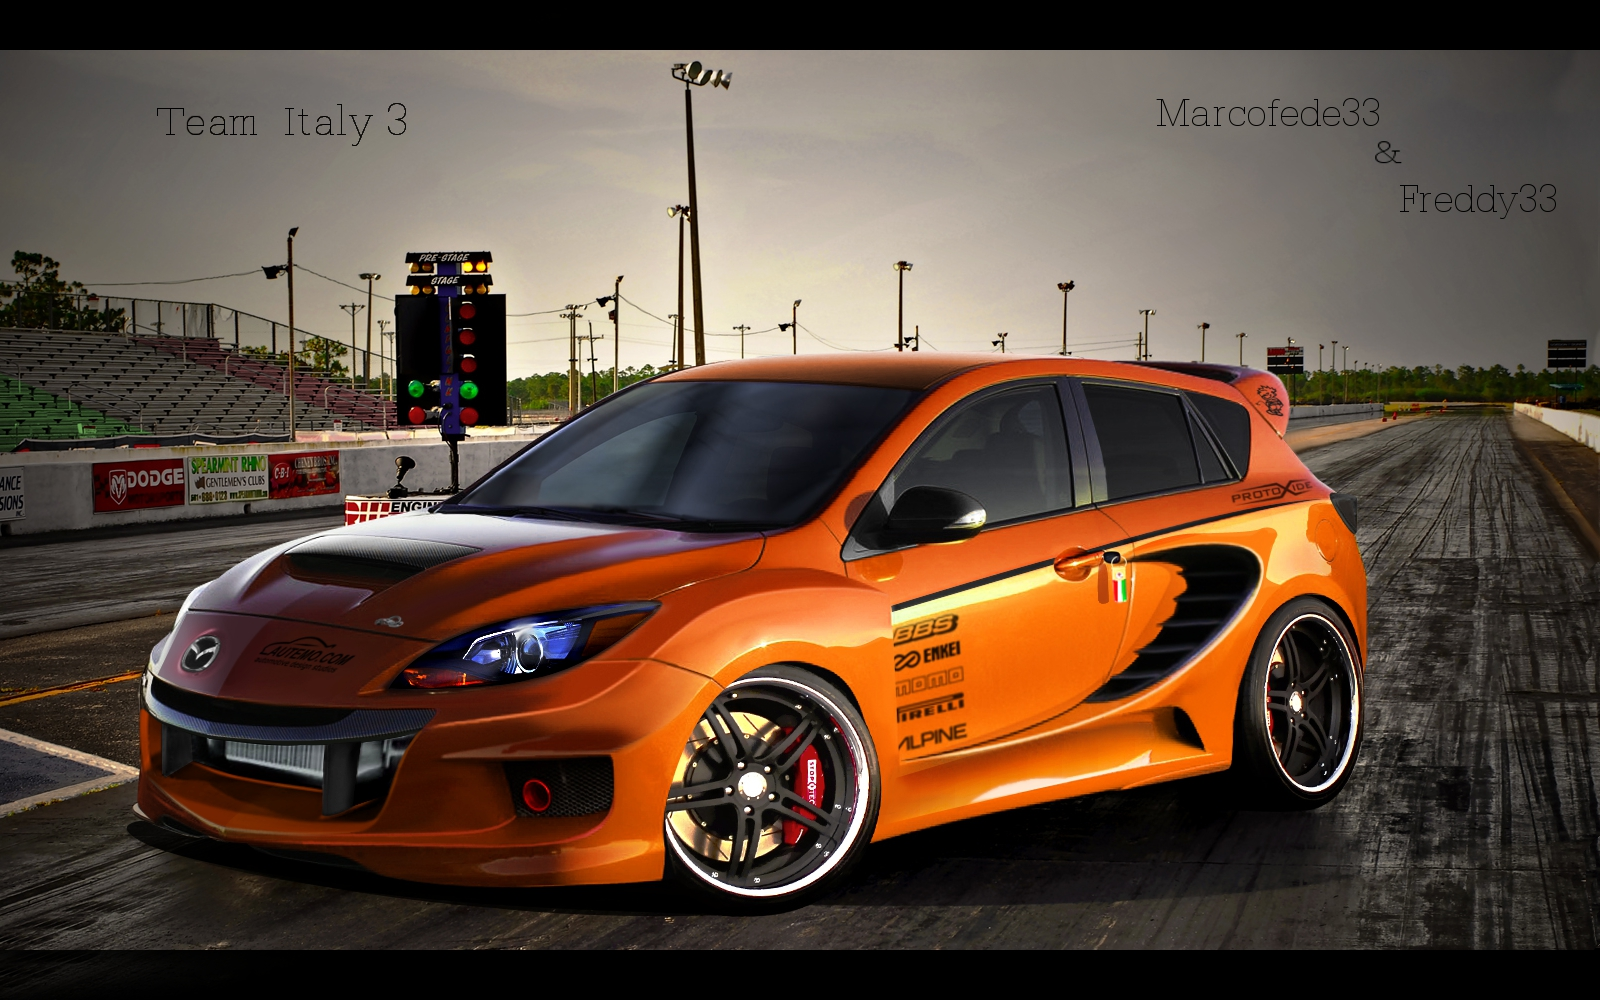 Mazda 3 MPS by Marcofede33 on DeviantArt